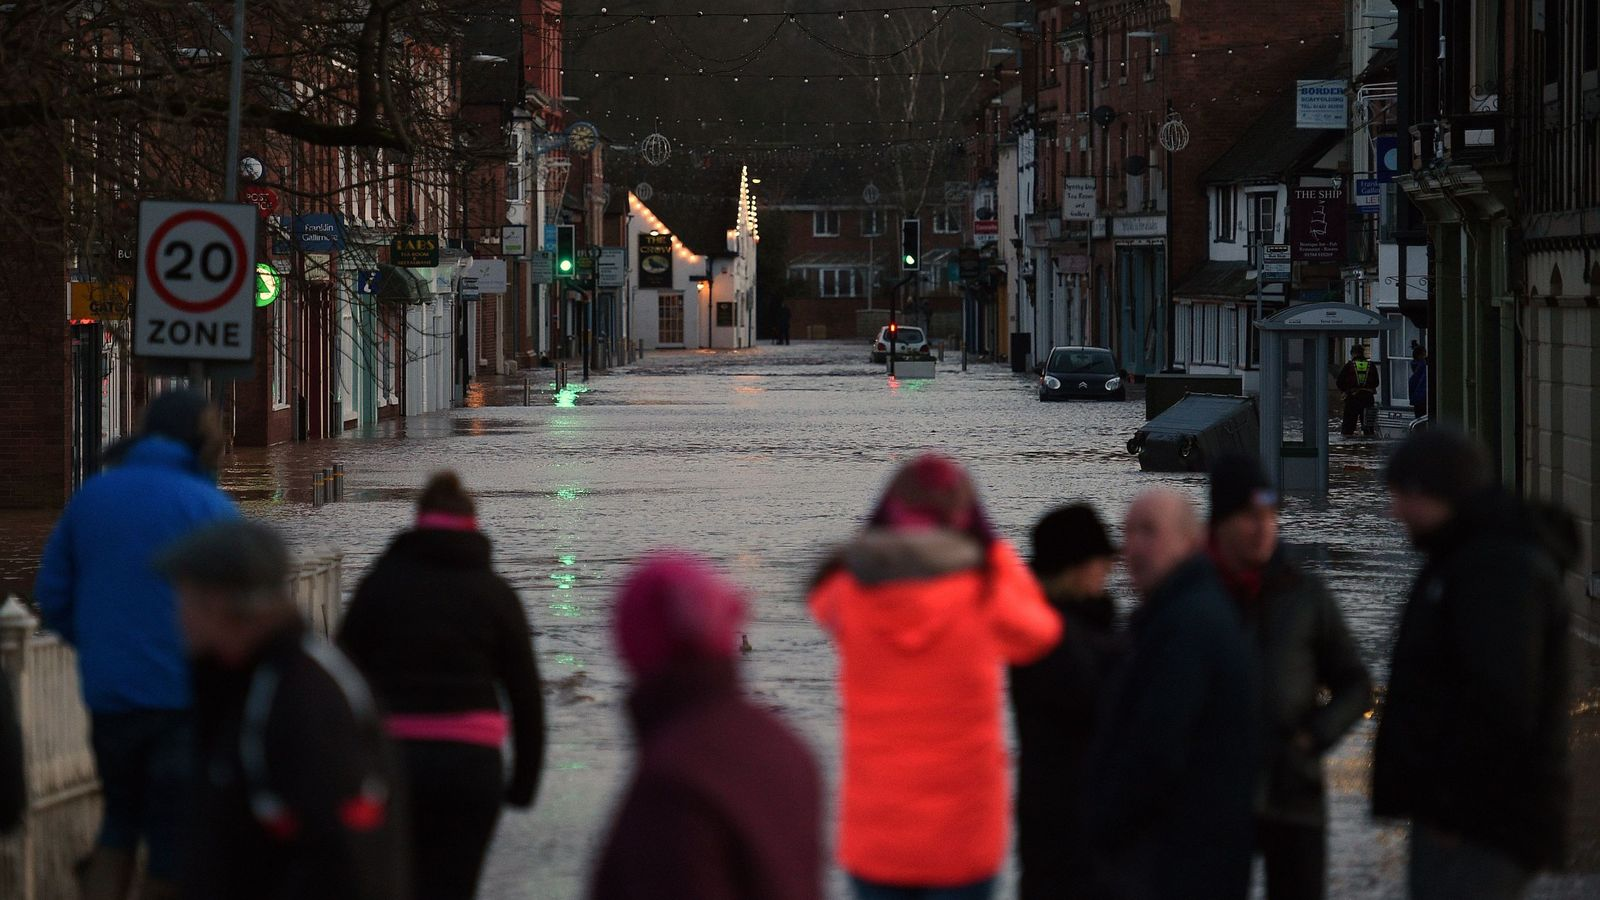 UK weather: Man dies as storm-hit areas warned flooding could last for days